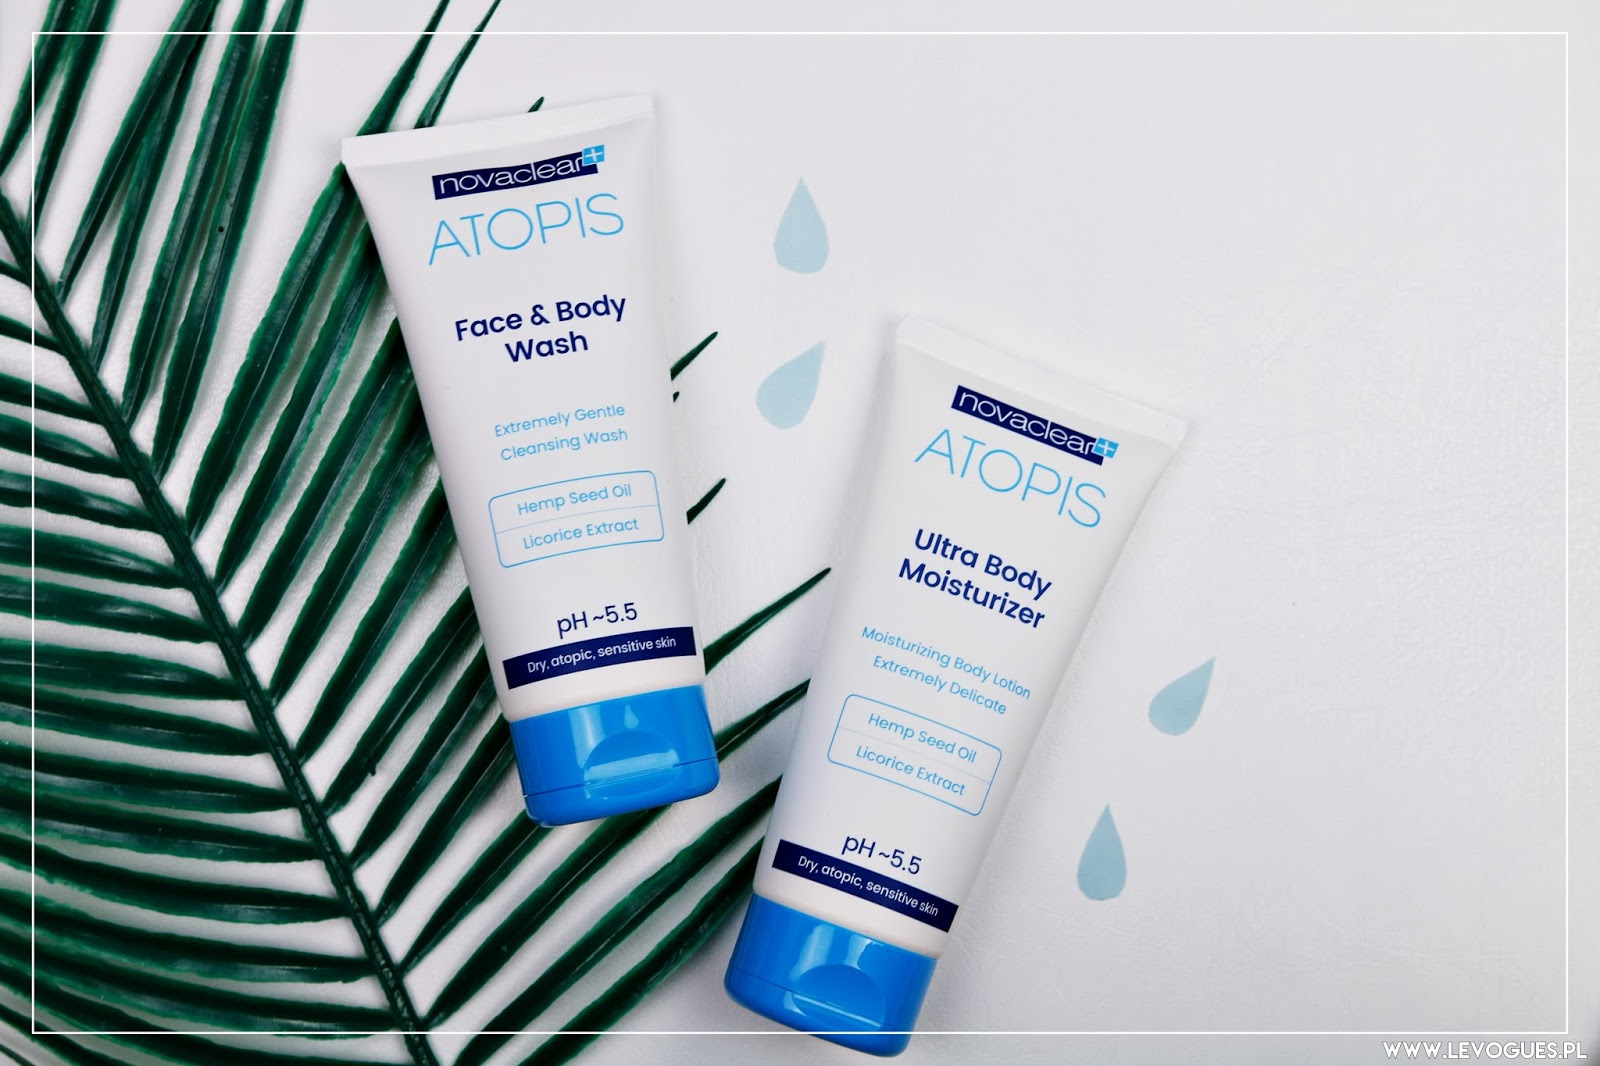 Novaclear Atopis Face & body wash Ultra body moisturizer